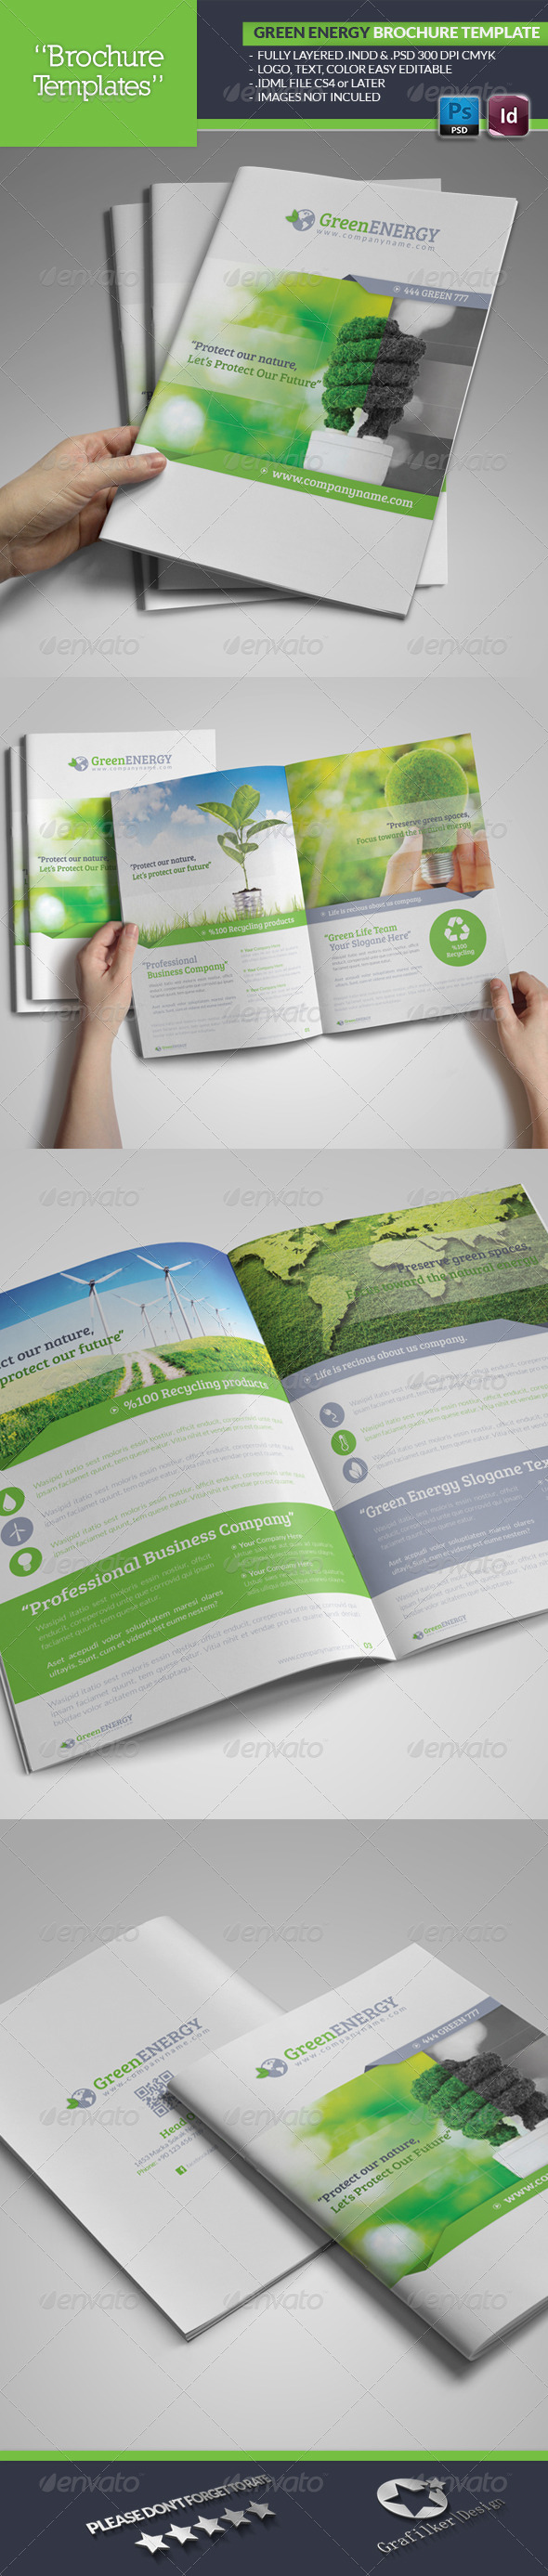 GraphicRiver Green Energy Brochure Template 4876697